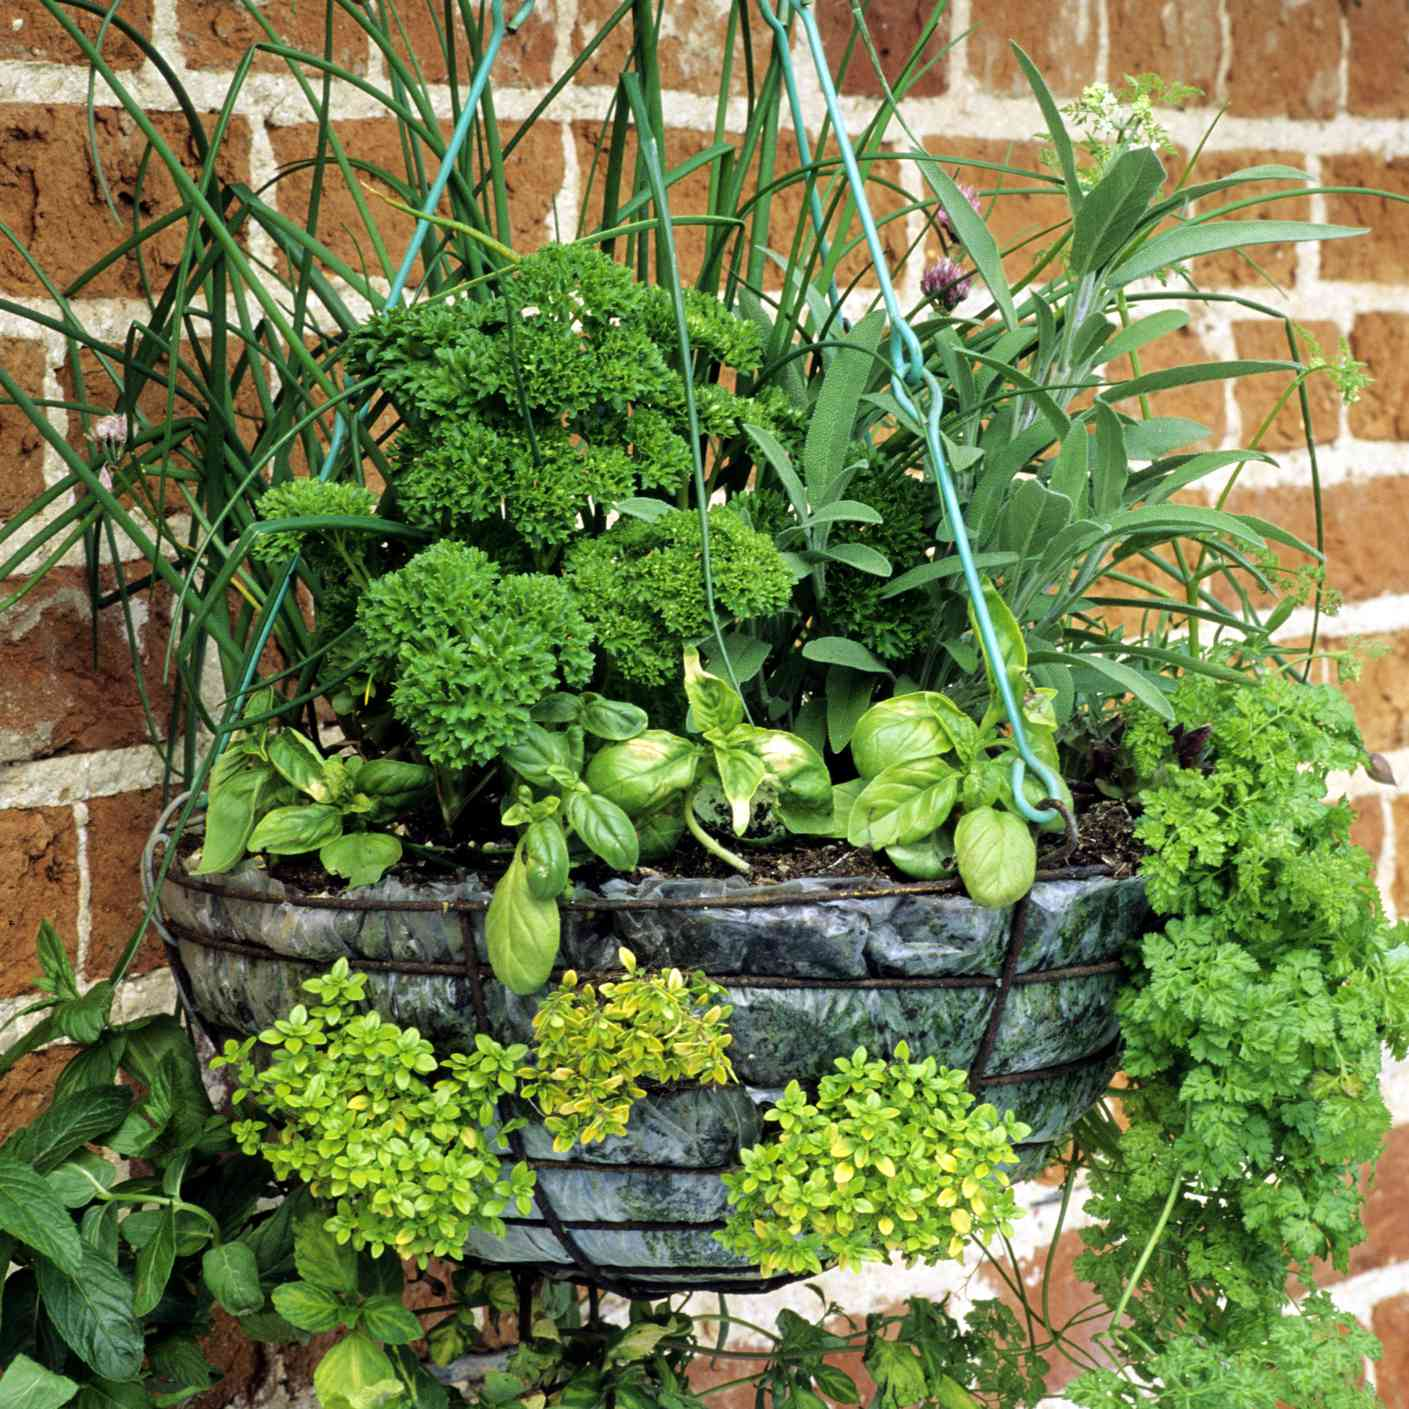 culinary herbs in hanging basket planter against brick wall